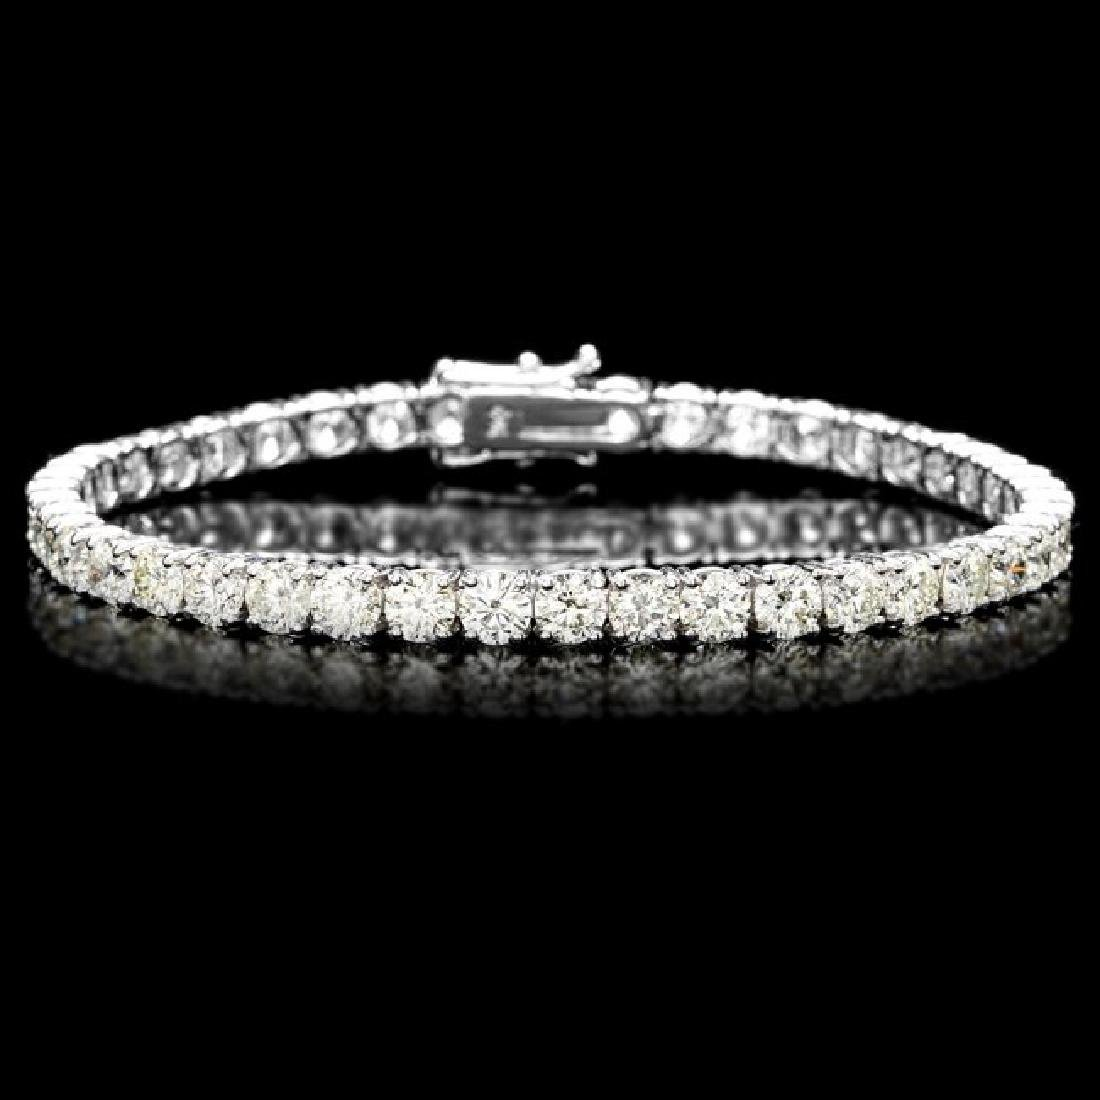 18k White Gold 12.00ct Diamond Tennis Bracelet